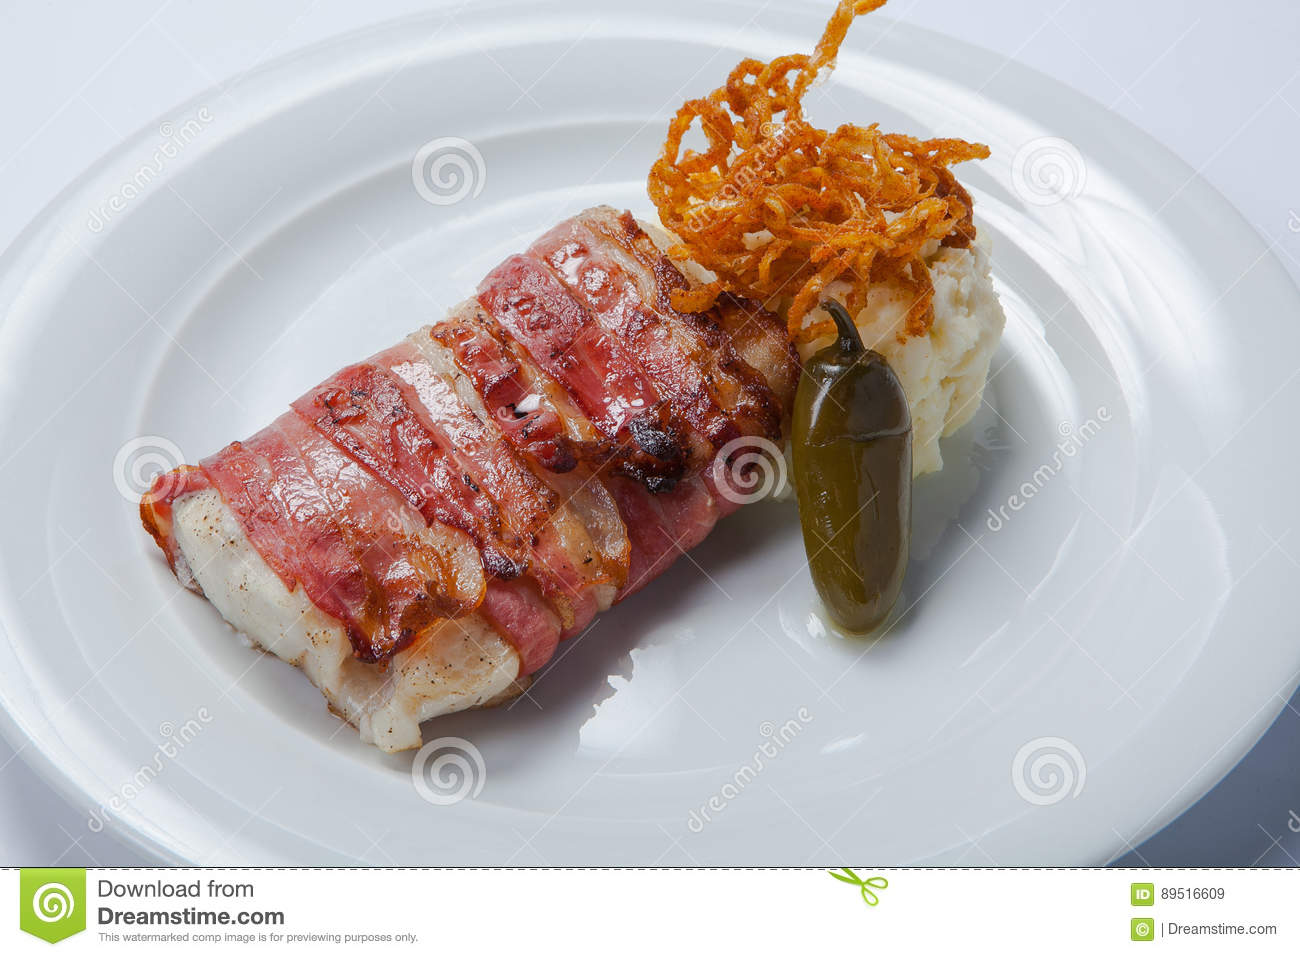 Baked Cod Wrapped In Bacon And Mashed Poatoes Stock Photo - Image ...